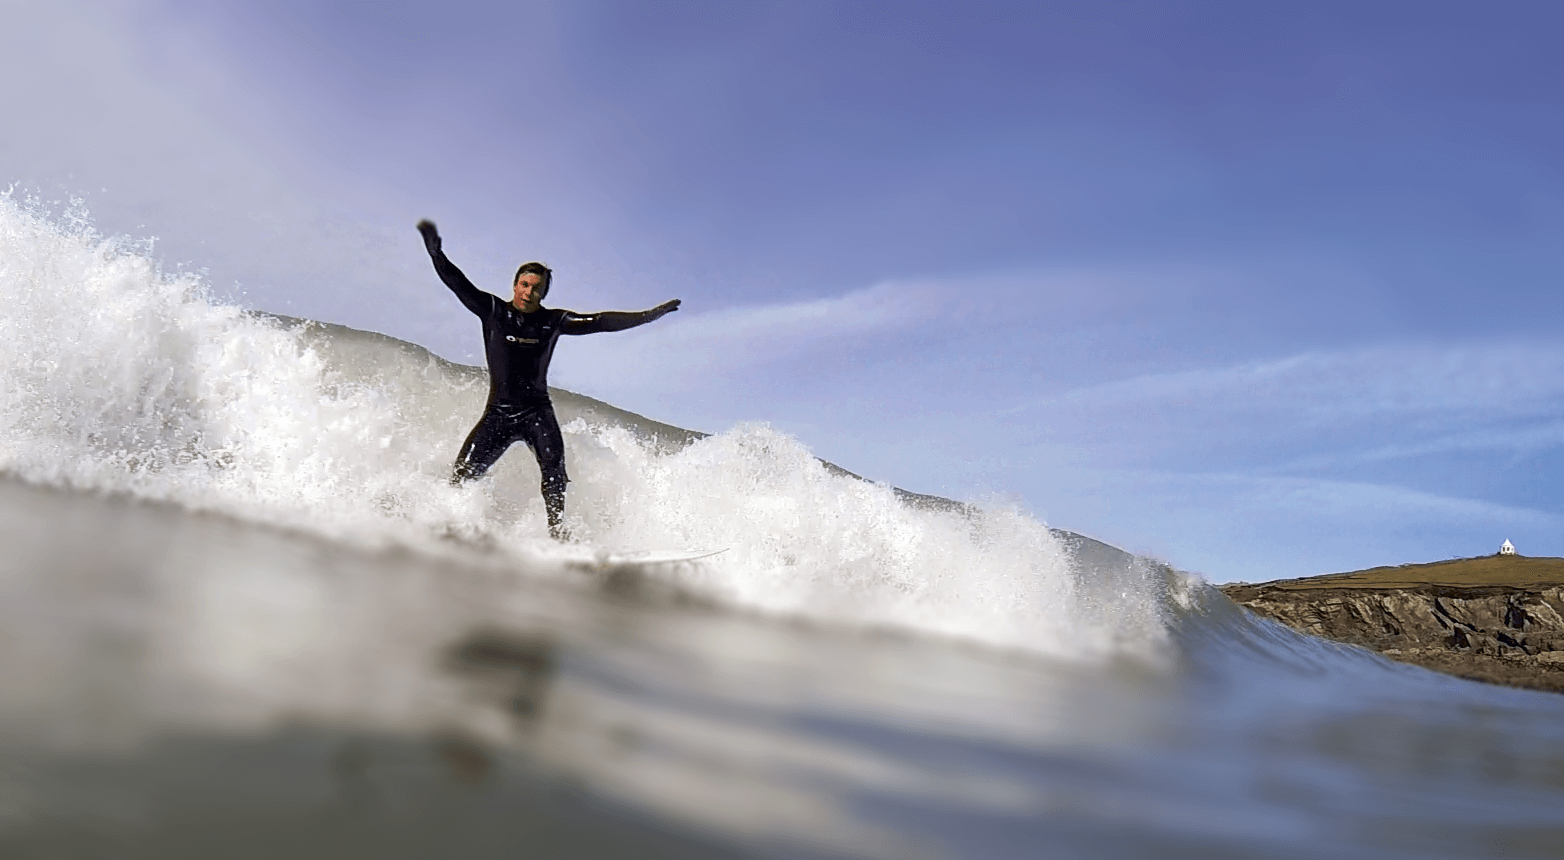 Immersive Video Production Action Camera 360 VR Drones Plymouth. Luke Dillion UK Surf Champion.